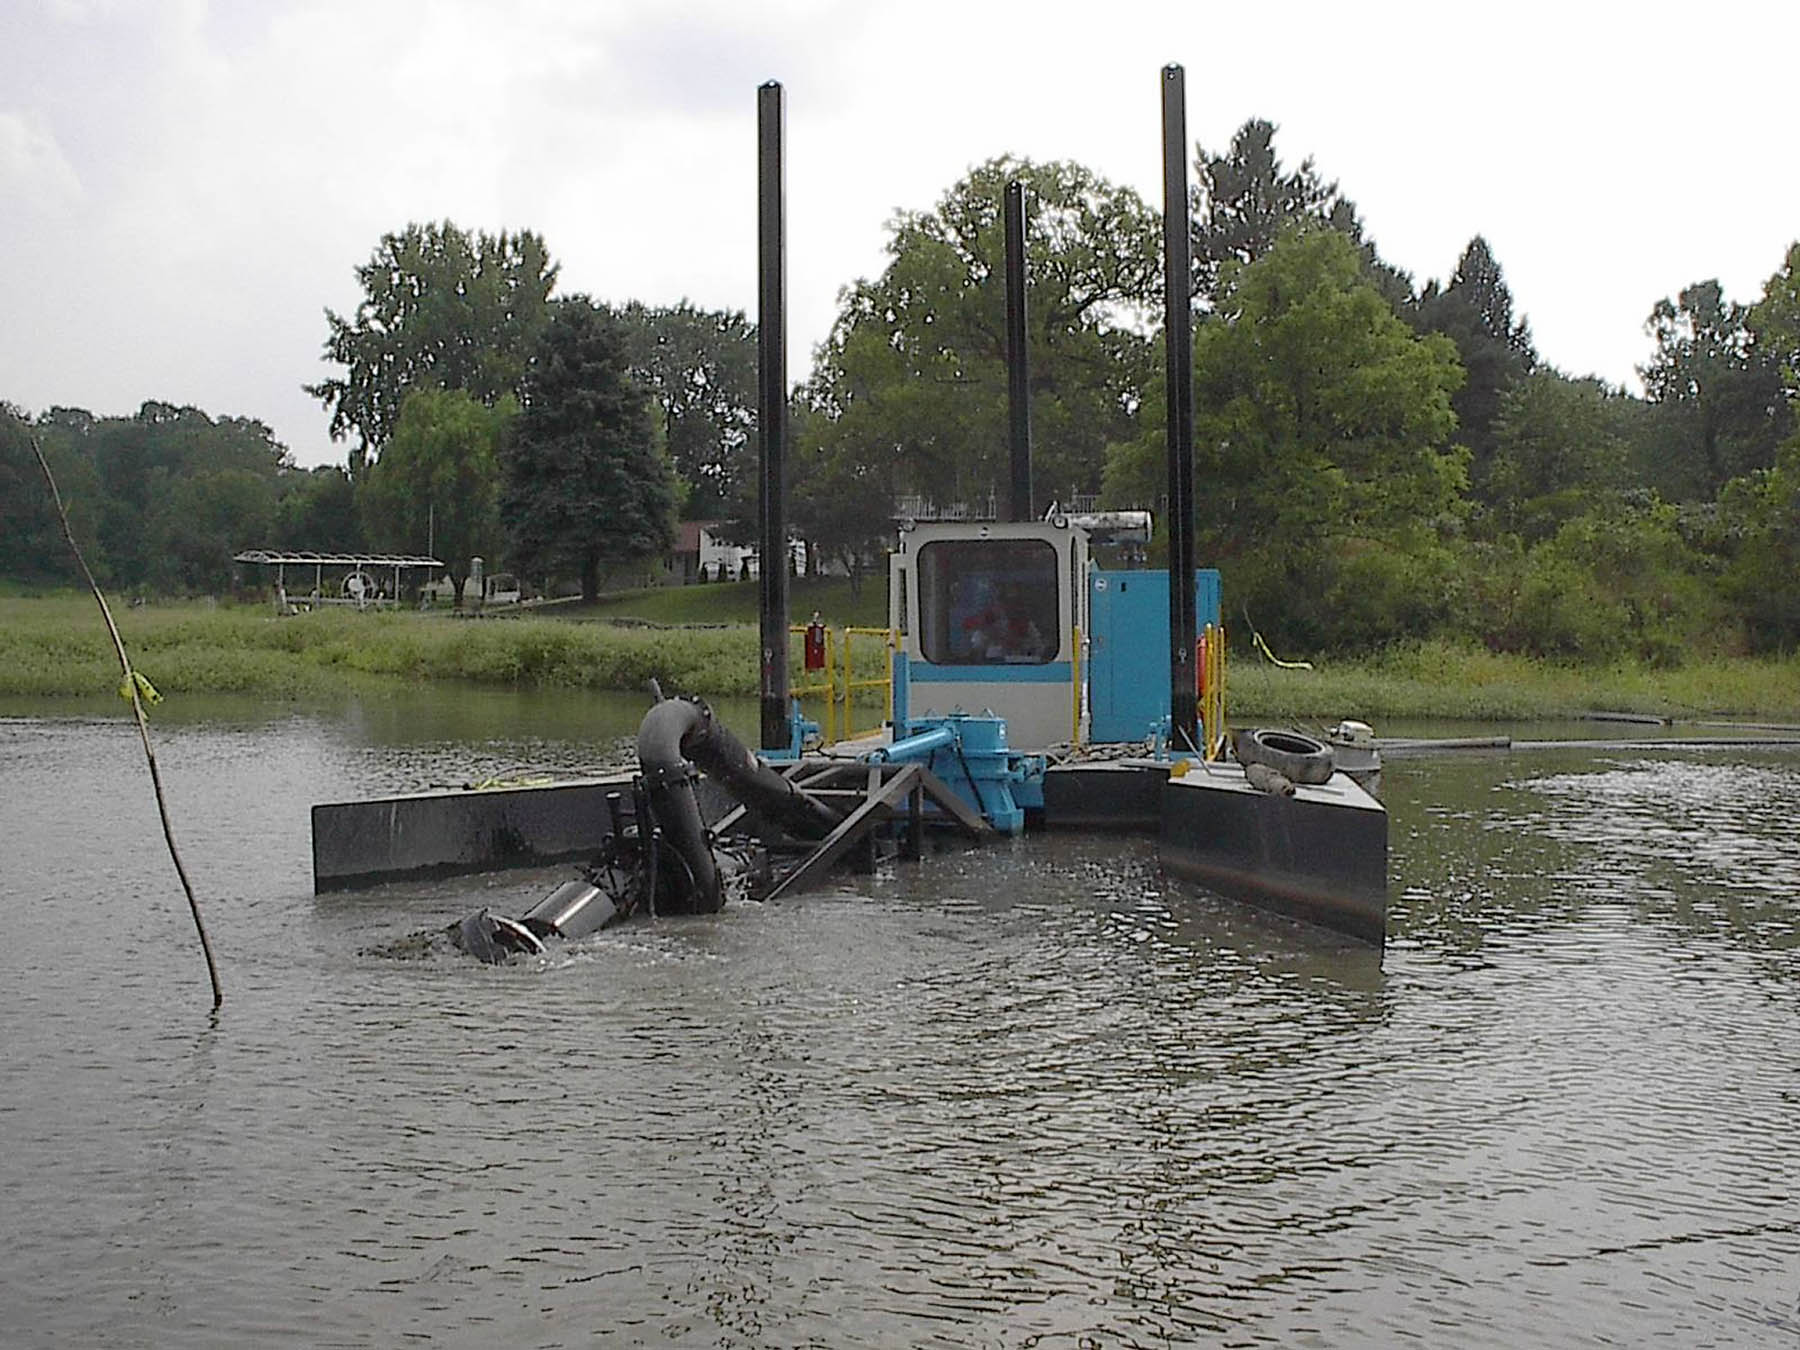 A DSC Moray Class dredging a residential channel. Navigational dredging is most commonly used in ports, harbors and shipping channels as a way to maintain these waterways.